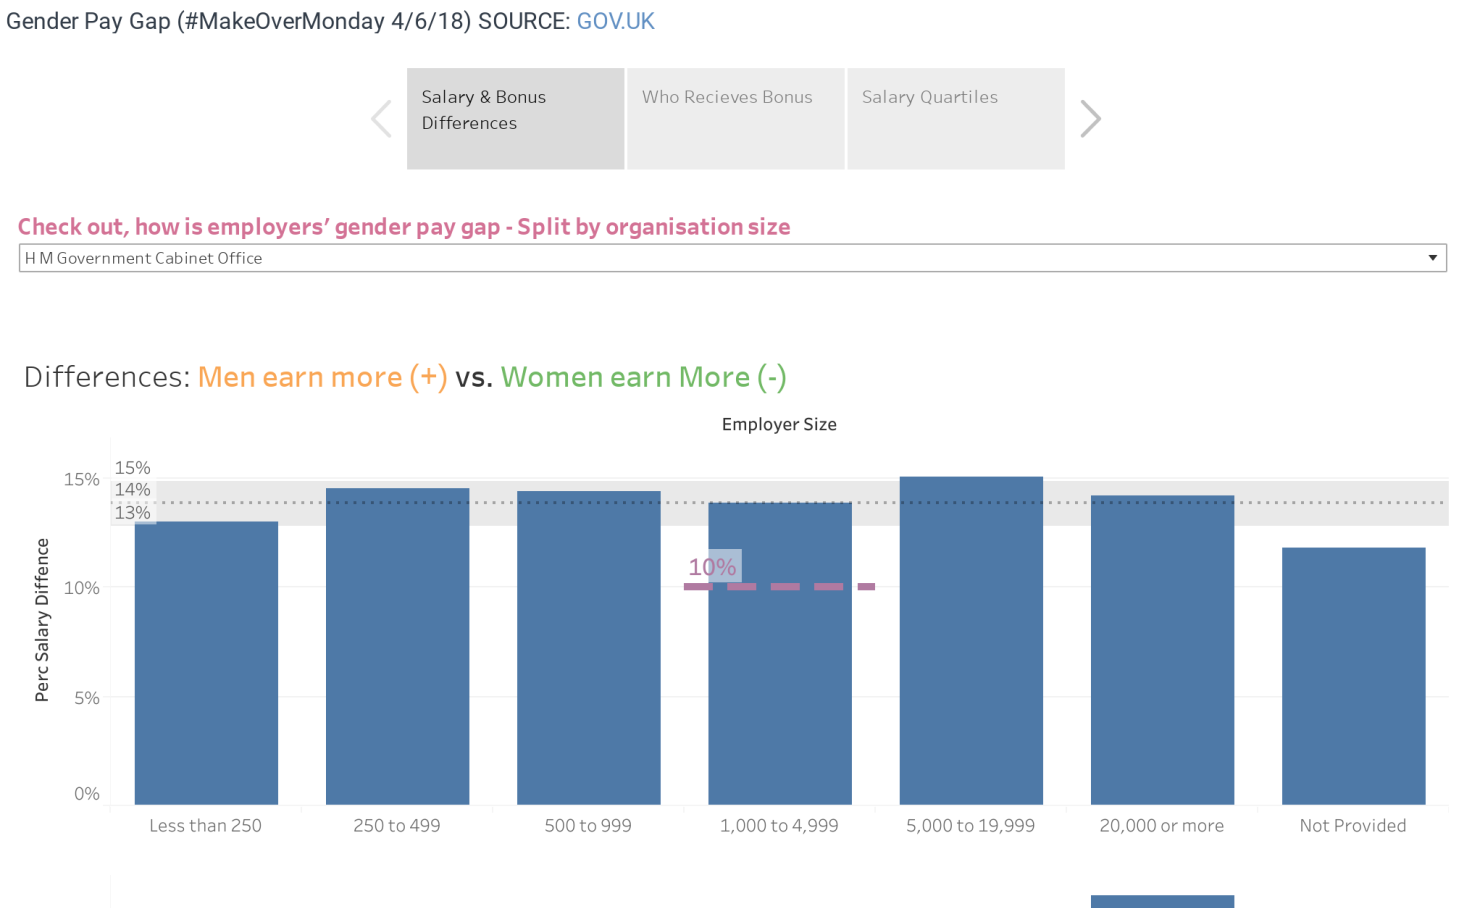 e48a565569a6a Gender Pay Gap (#MakeOverMonday 4/6/18) - Prabhjot Juneja | Tableau Public